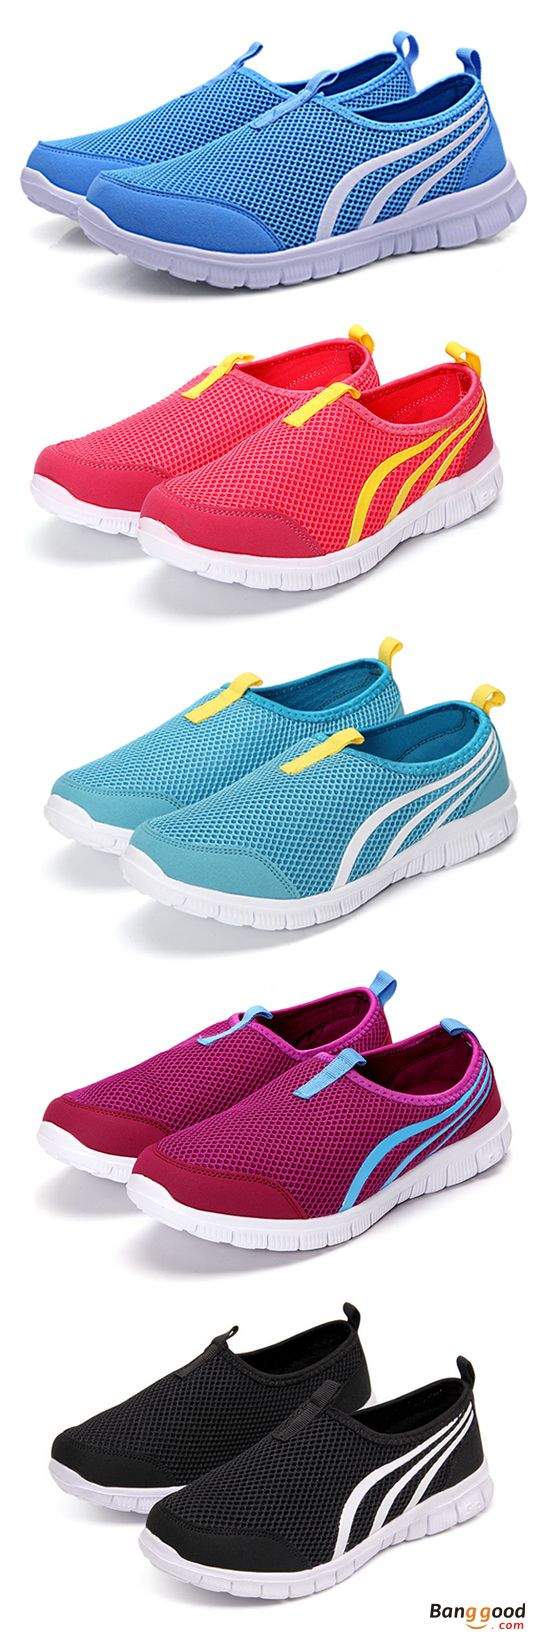 US$ 17.99 + Free shipping. Unisex Sport Shoes, Running Shoes, Running Shoes for Men, Running Shoes for Women, Outdoor Athletic Shoes.Color: Light Grey, Dark Gray,Dark Blue, Light Blue, Blue, Purple,Watermelon Red.Gender: Unisex.